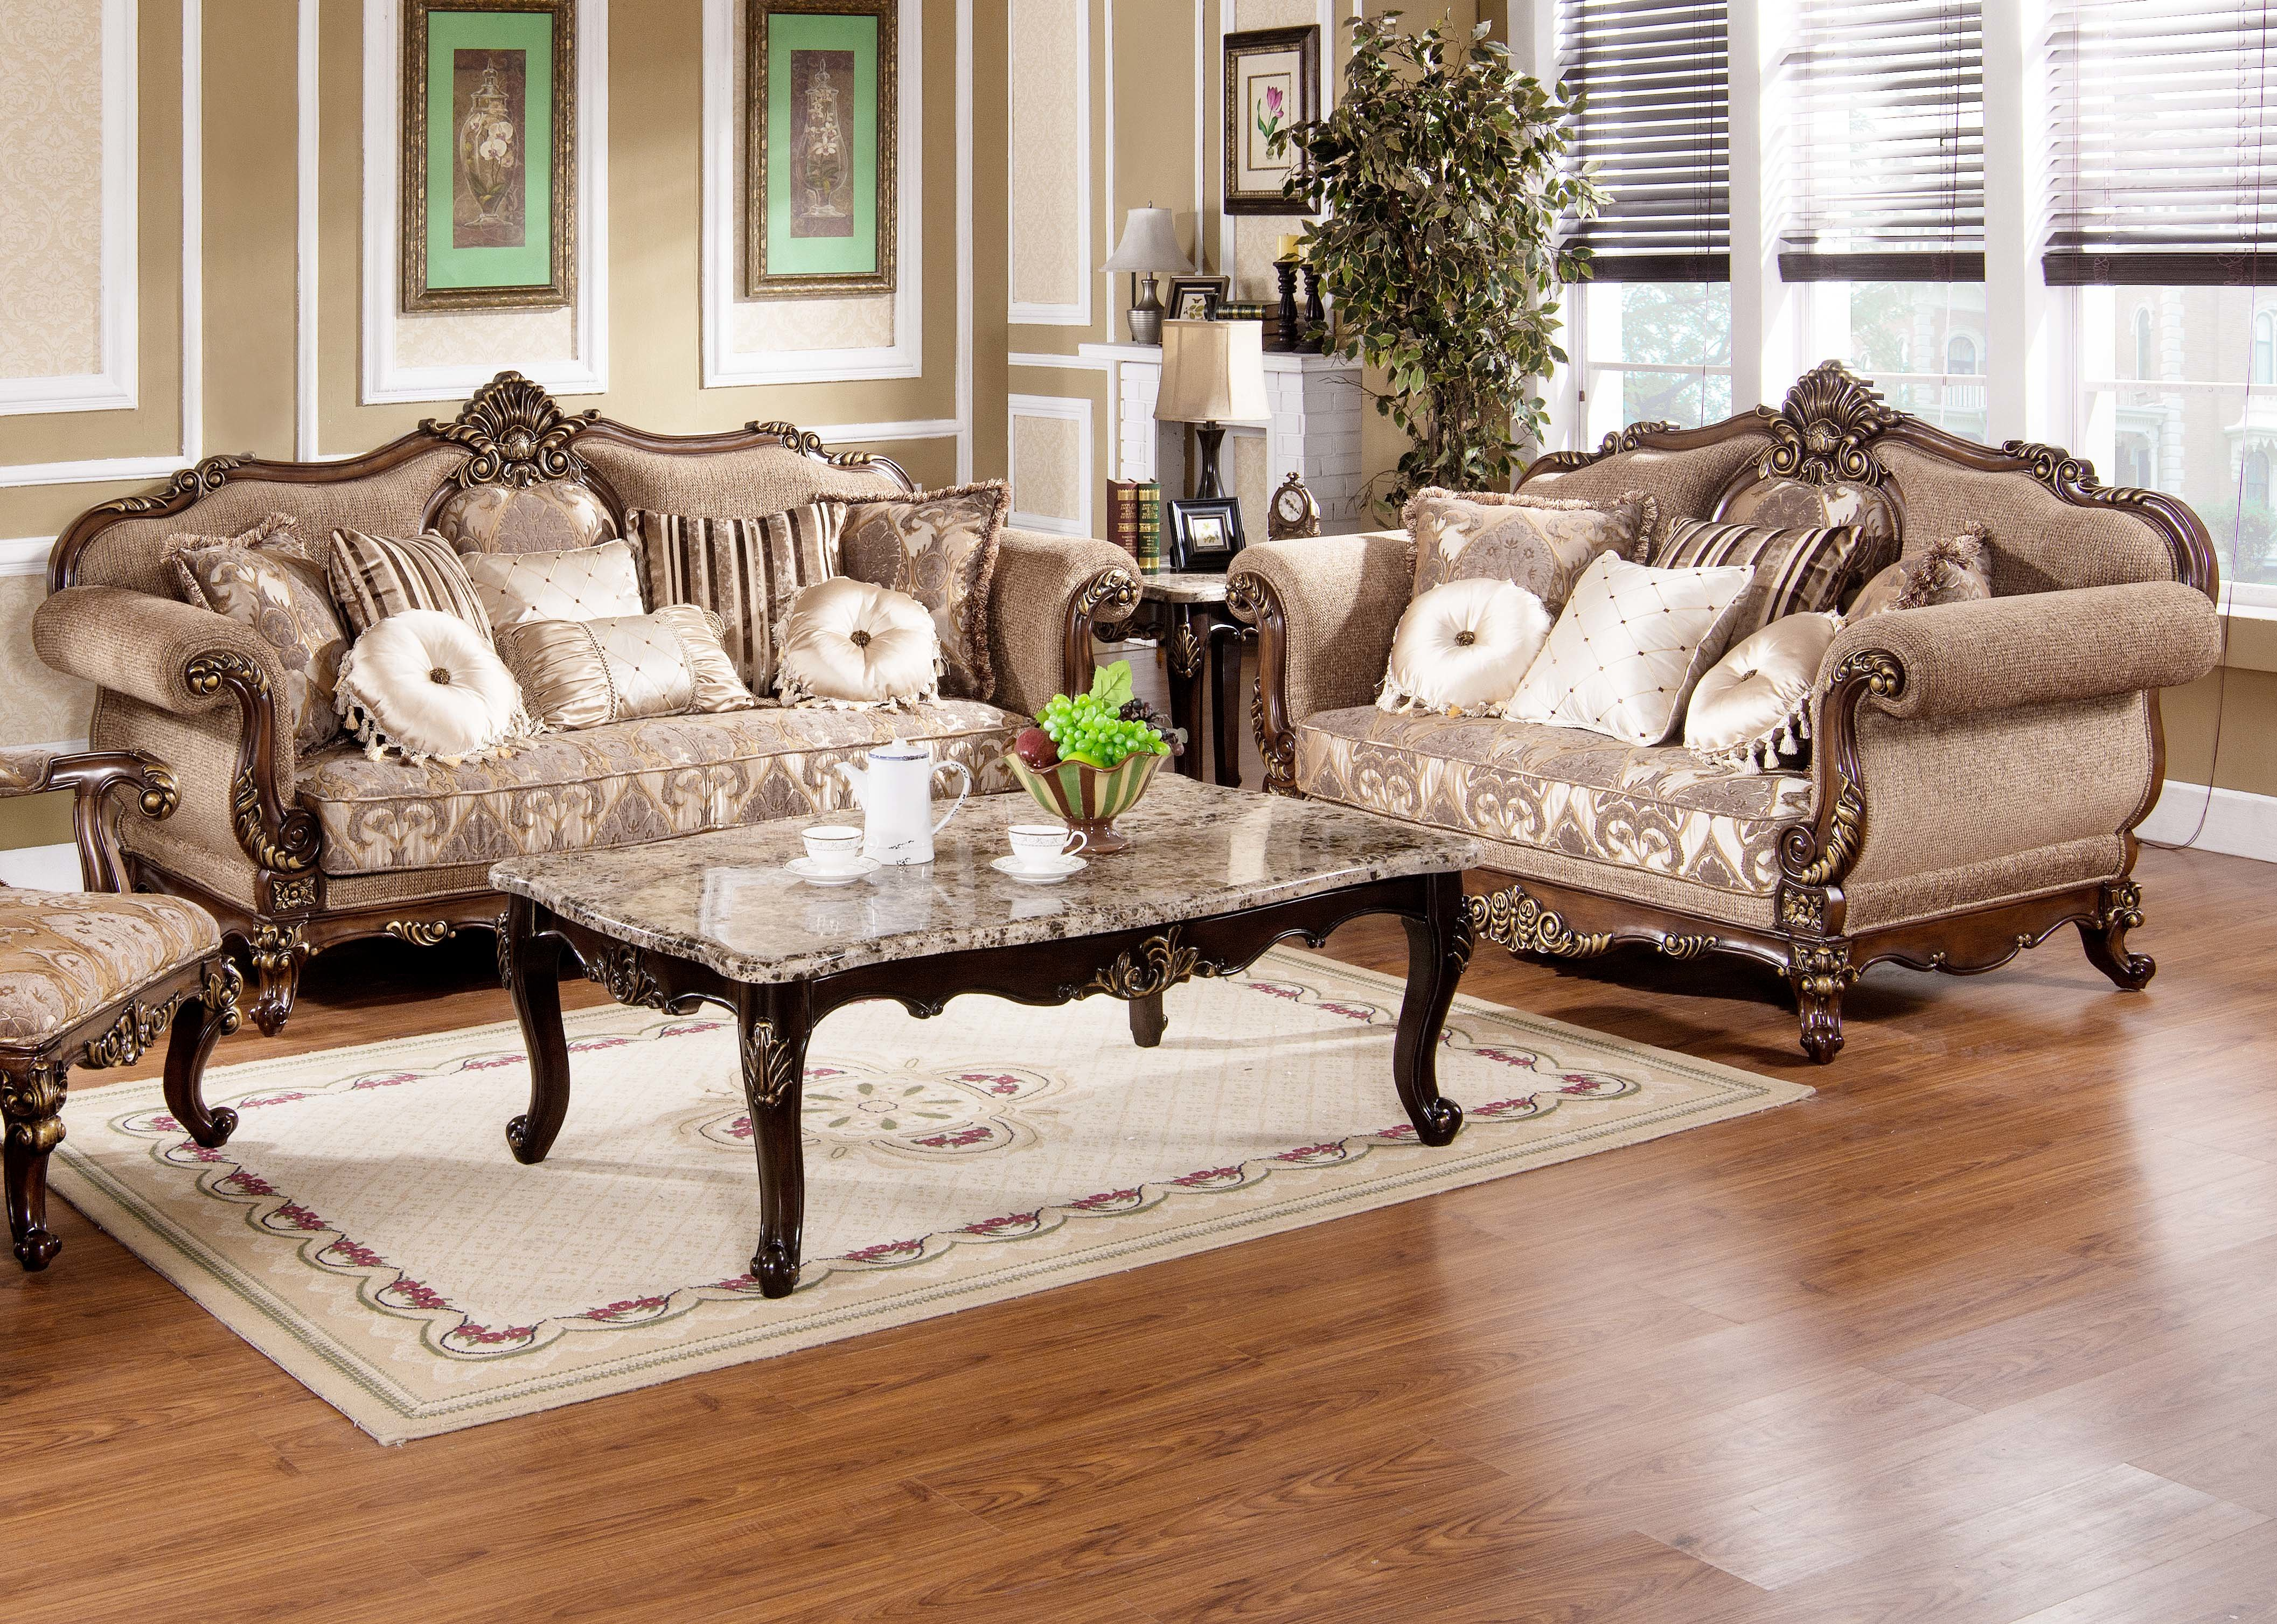 Astoria Grand Peabody 2 Piece Living Room Set Reviews Wayfair in Full Living Room Sets Cheap